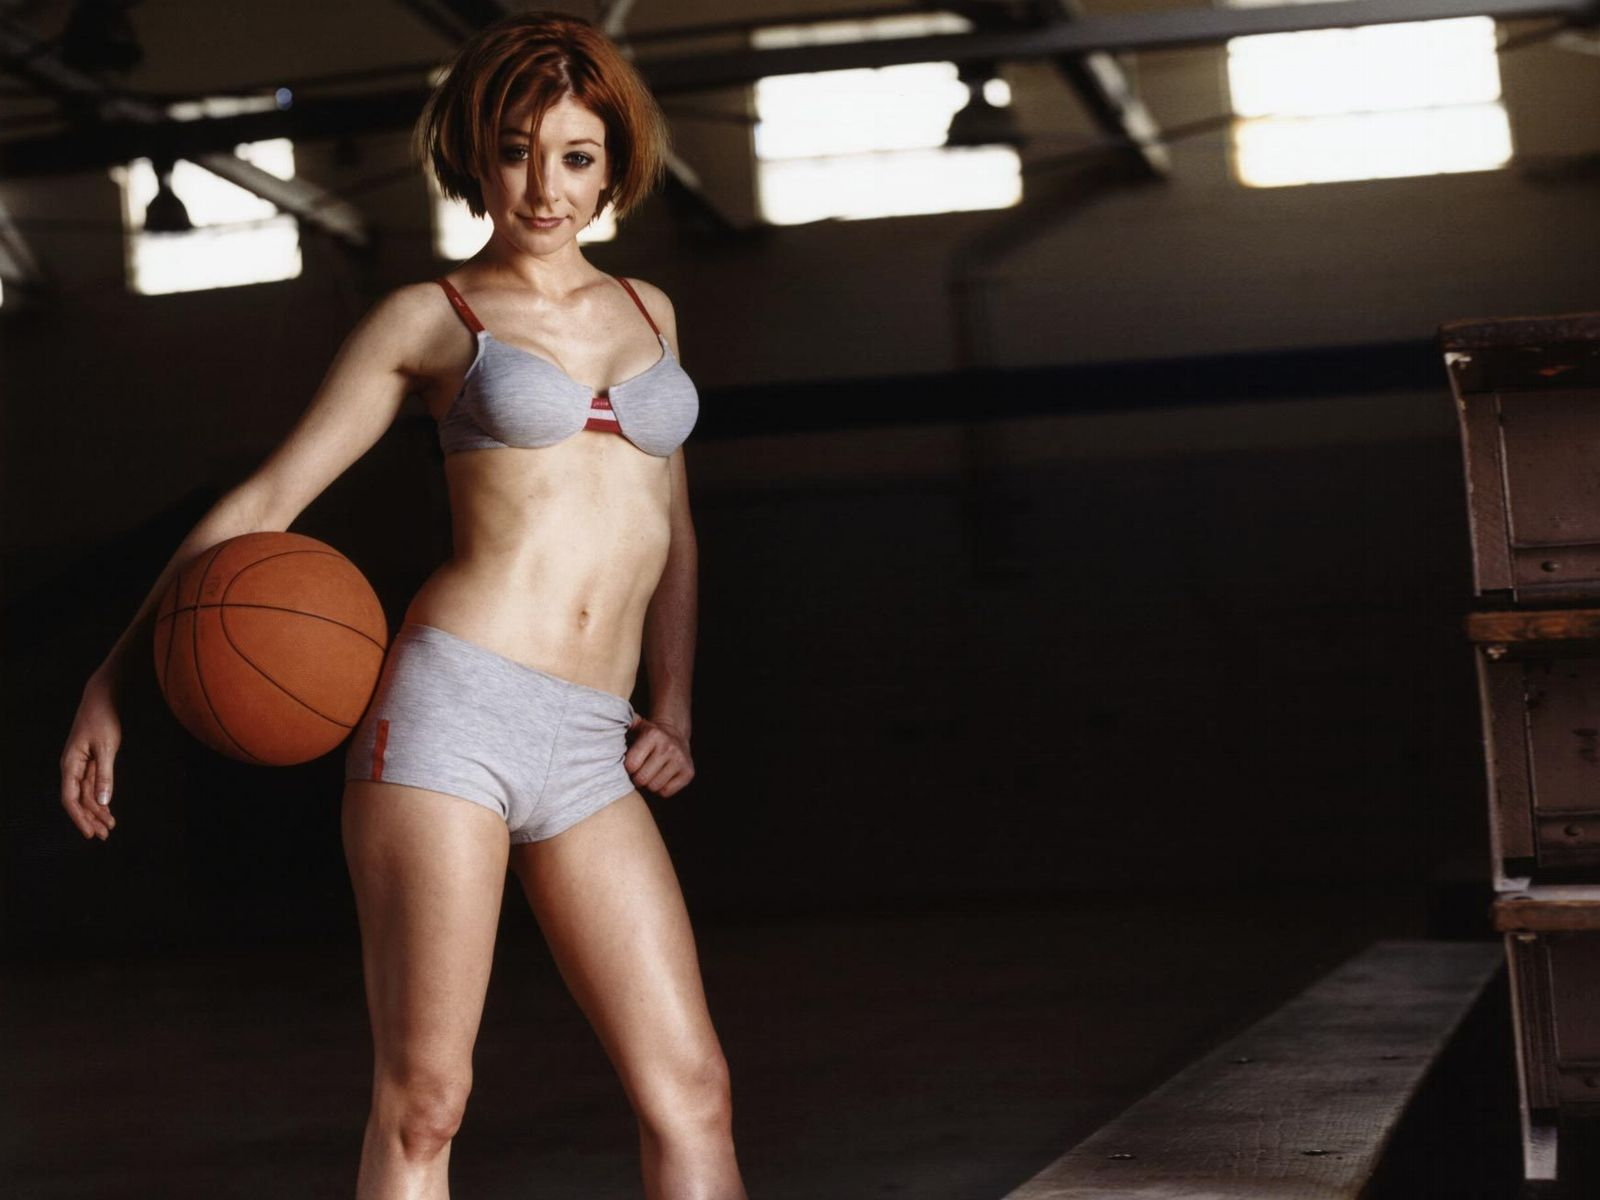 Alyson hannigan hot pictures photo gallery amp wallpapers